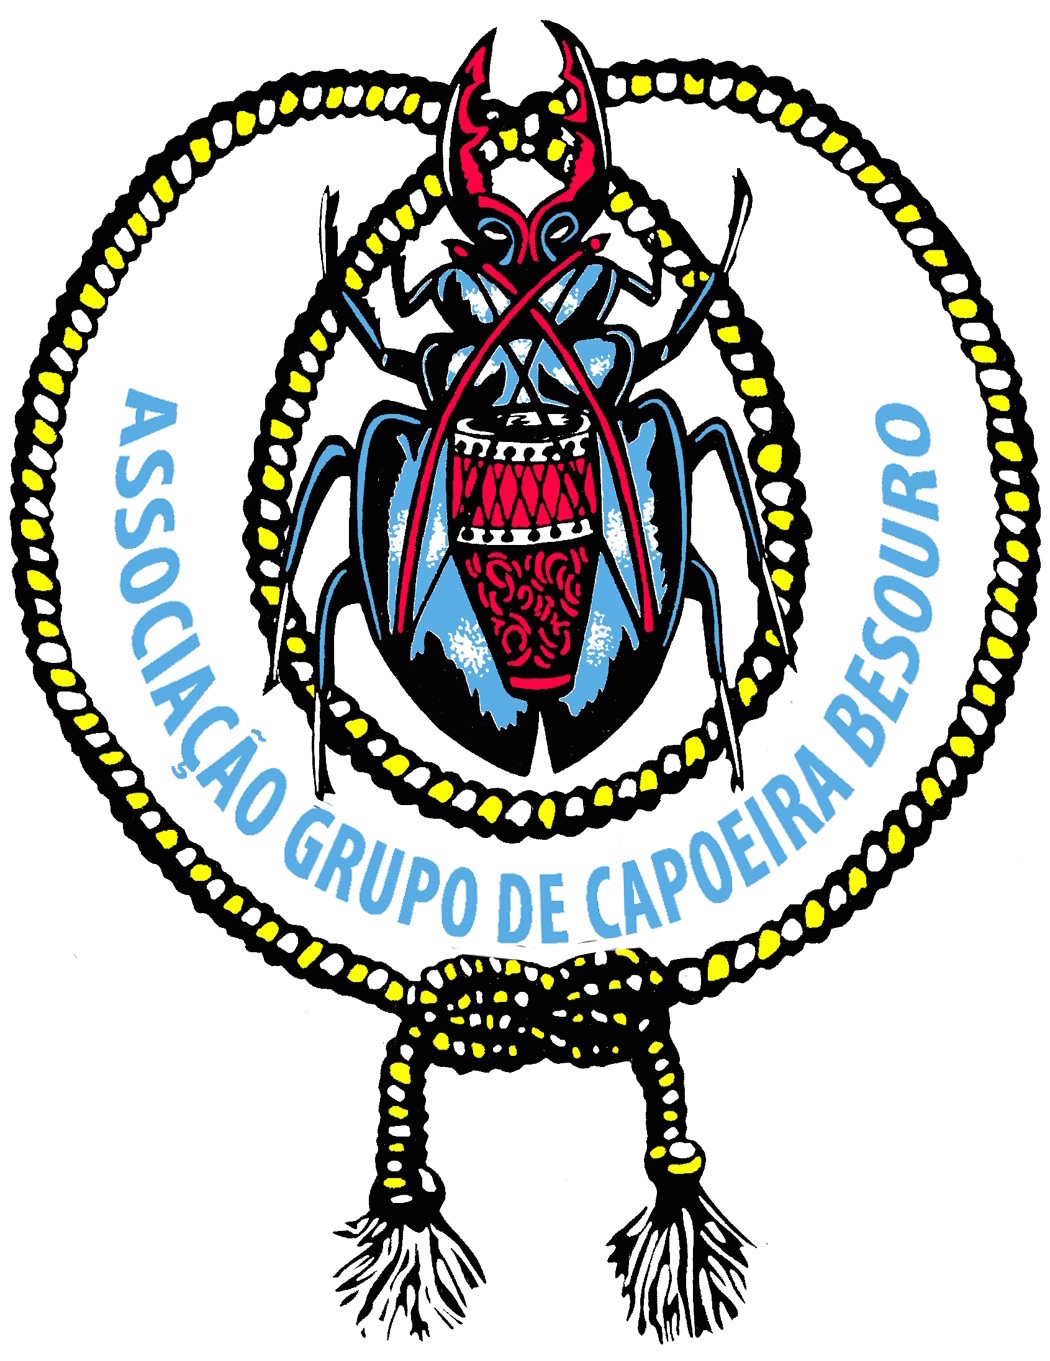 Our school Capoeira Besouro works closely with sister schools in Los Angeles, Japan and Hawaii